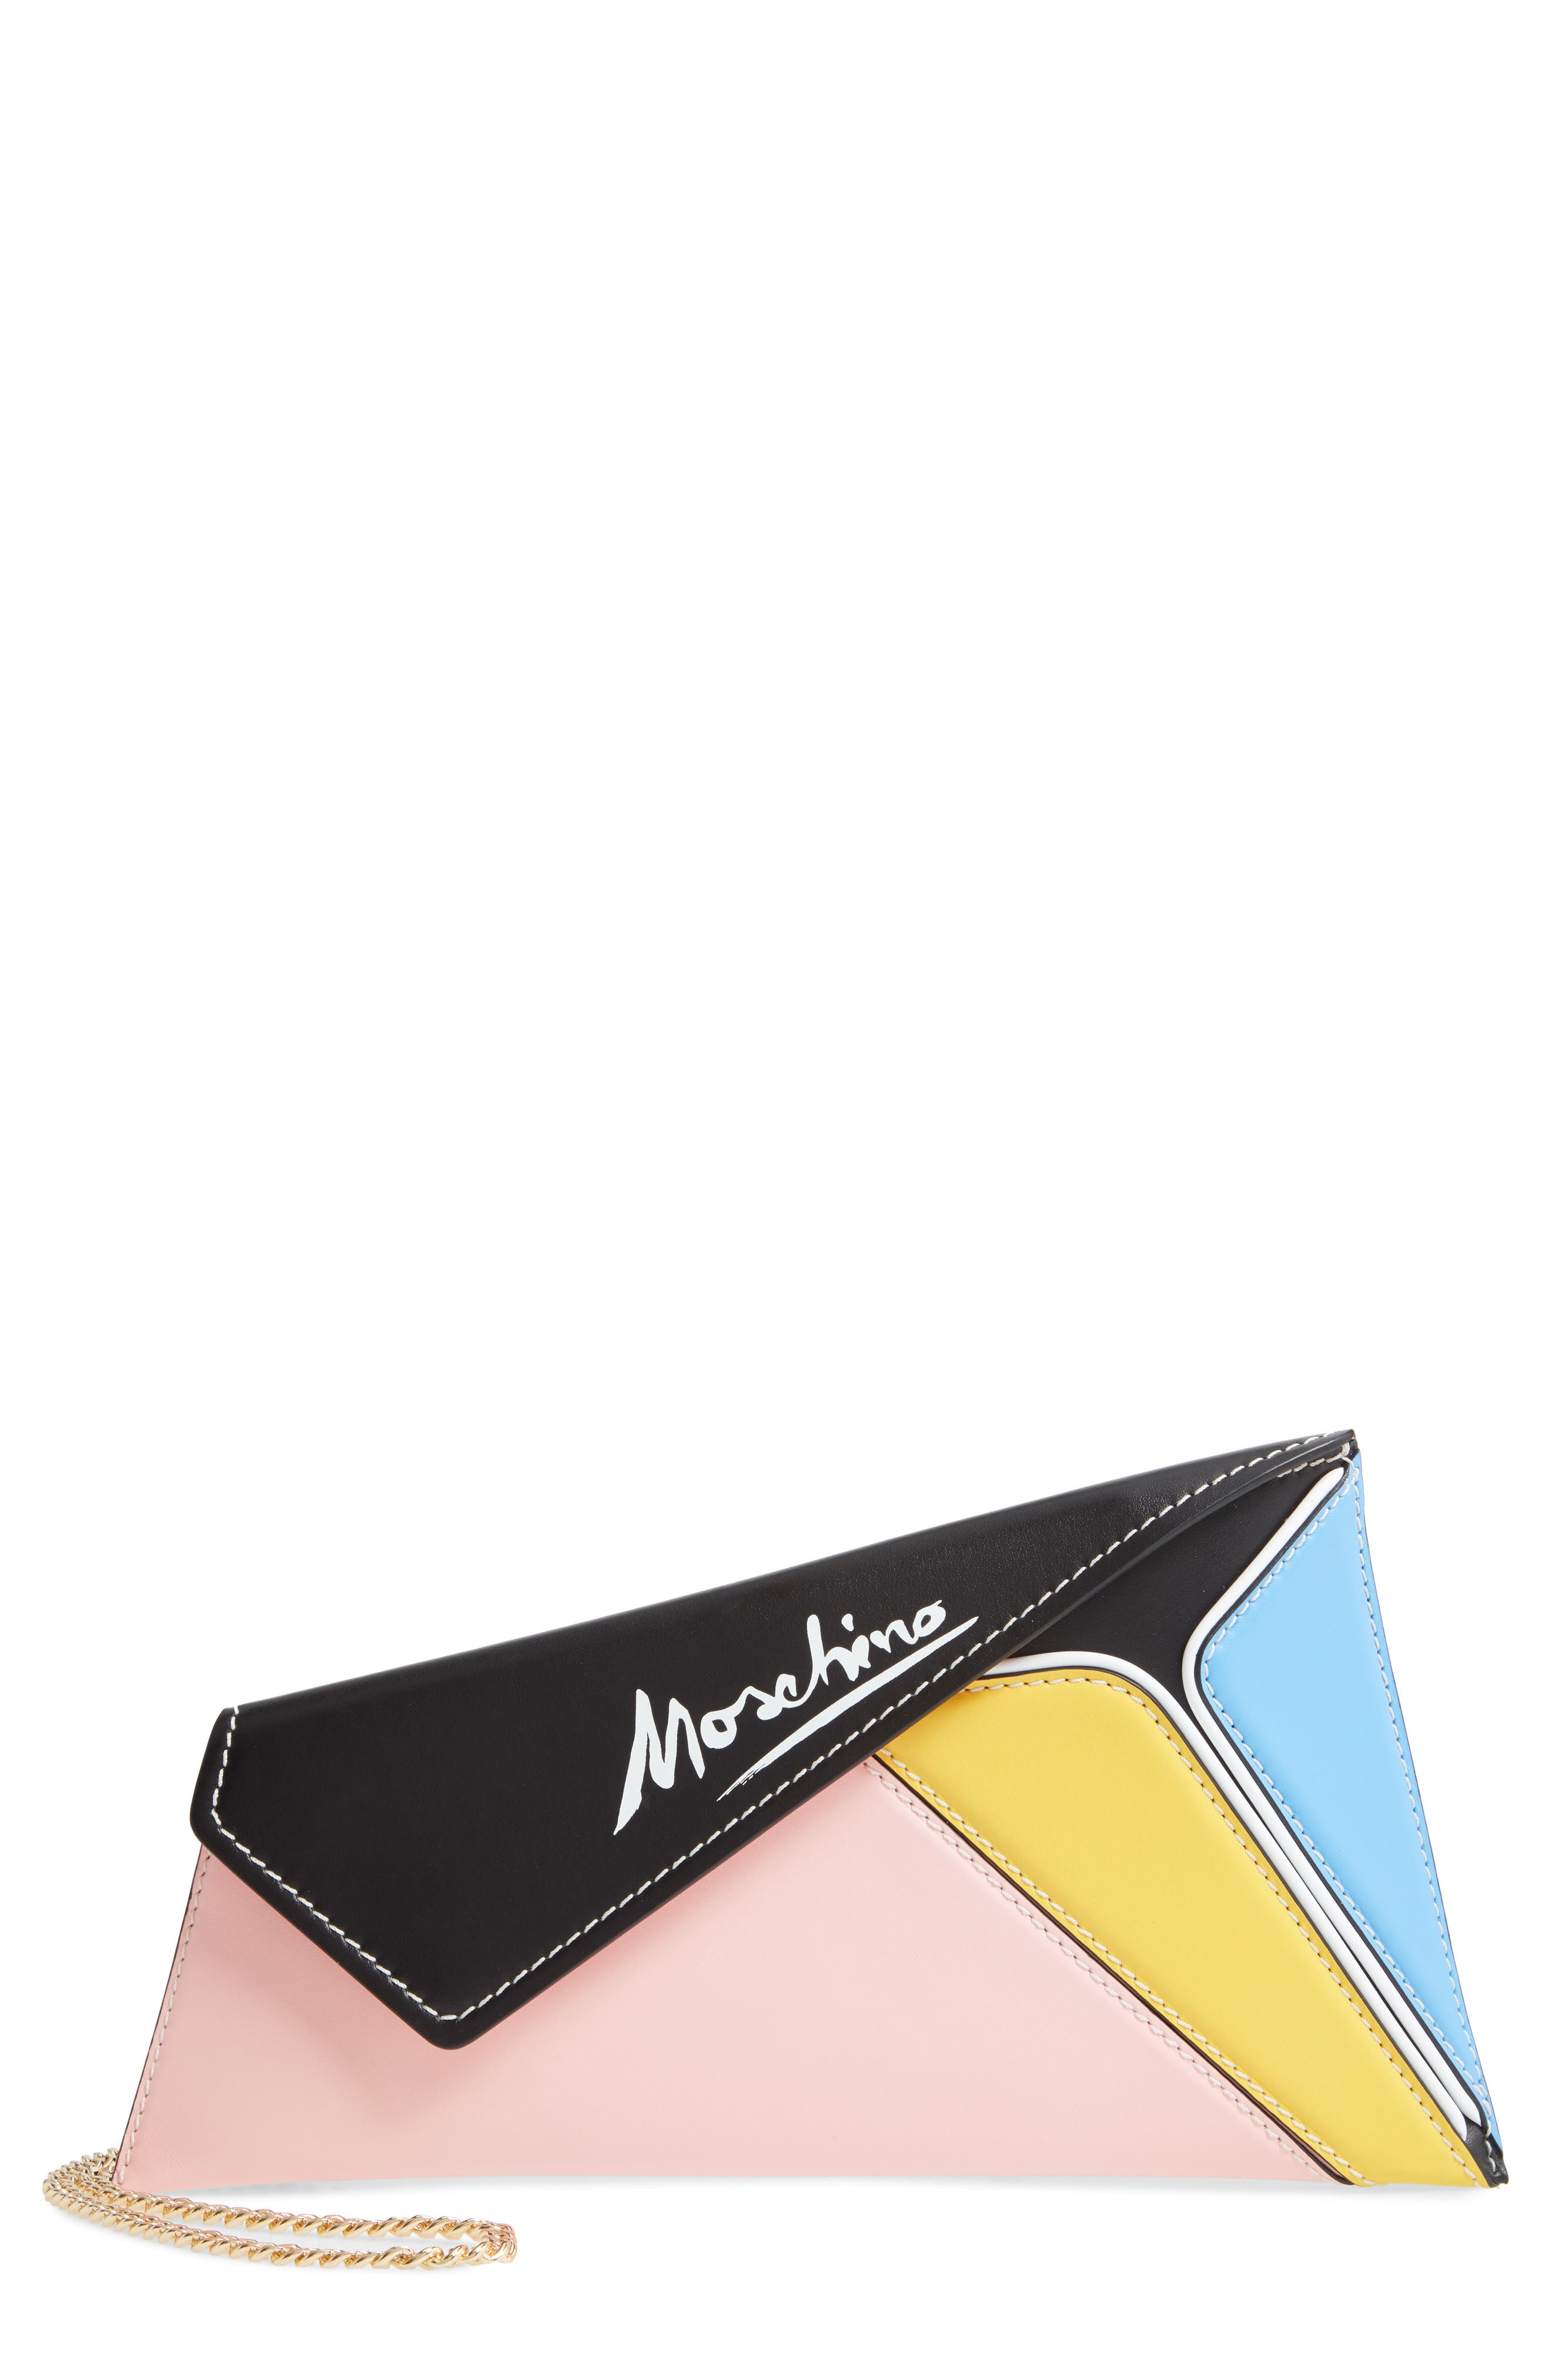 Jeremy Scott puts an artful slant on this color-blocked leather clutch inspired by the cubist work of Pablo Picasso. A signed flap makes it feel like a true masterpiece. Style Name: Moschino Patchwork Leather Clutch. Style Number: 5990810. Available in stores.